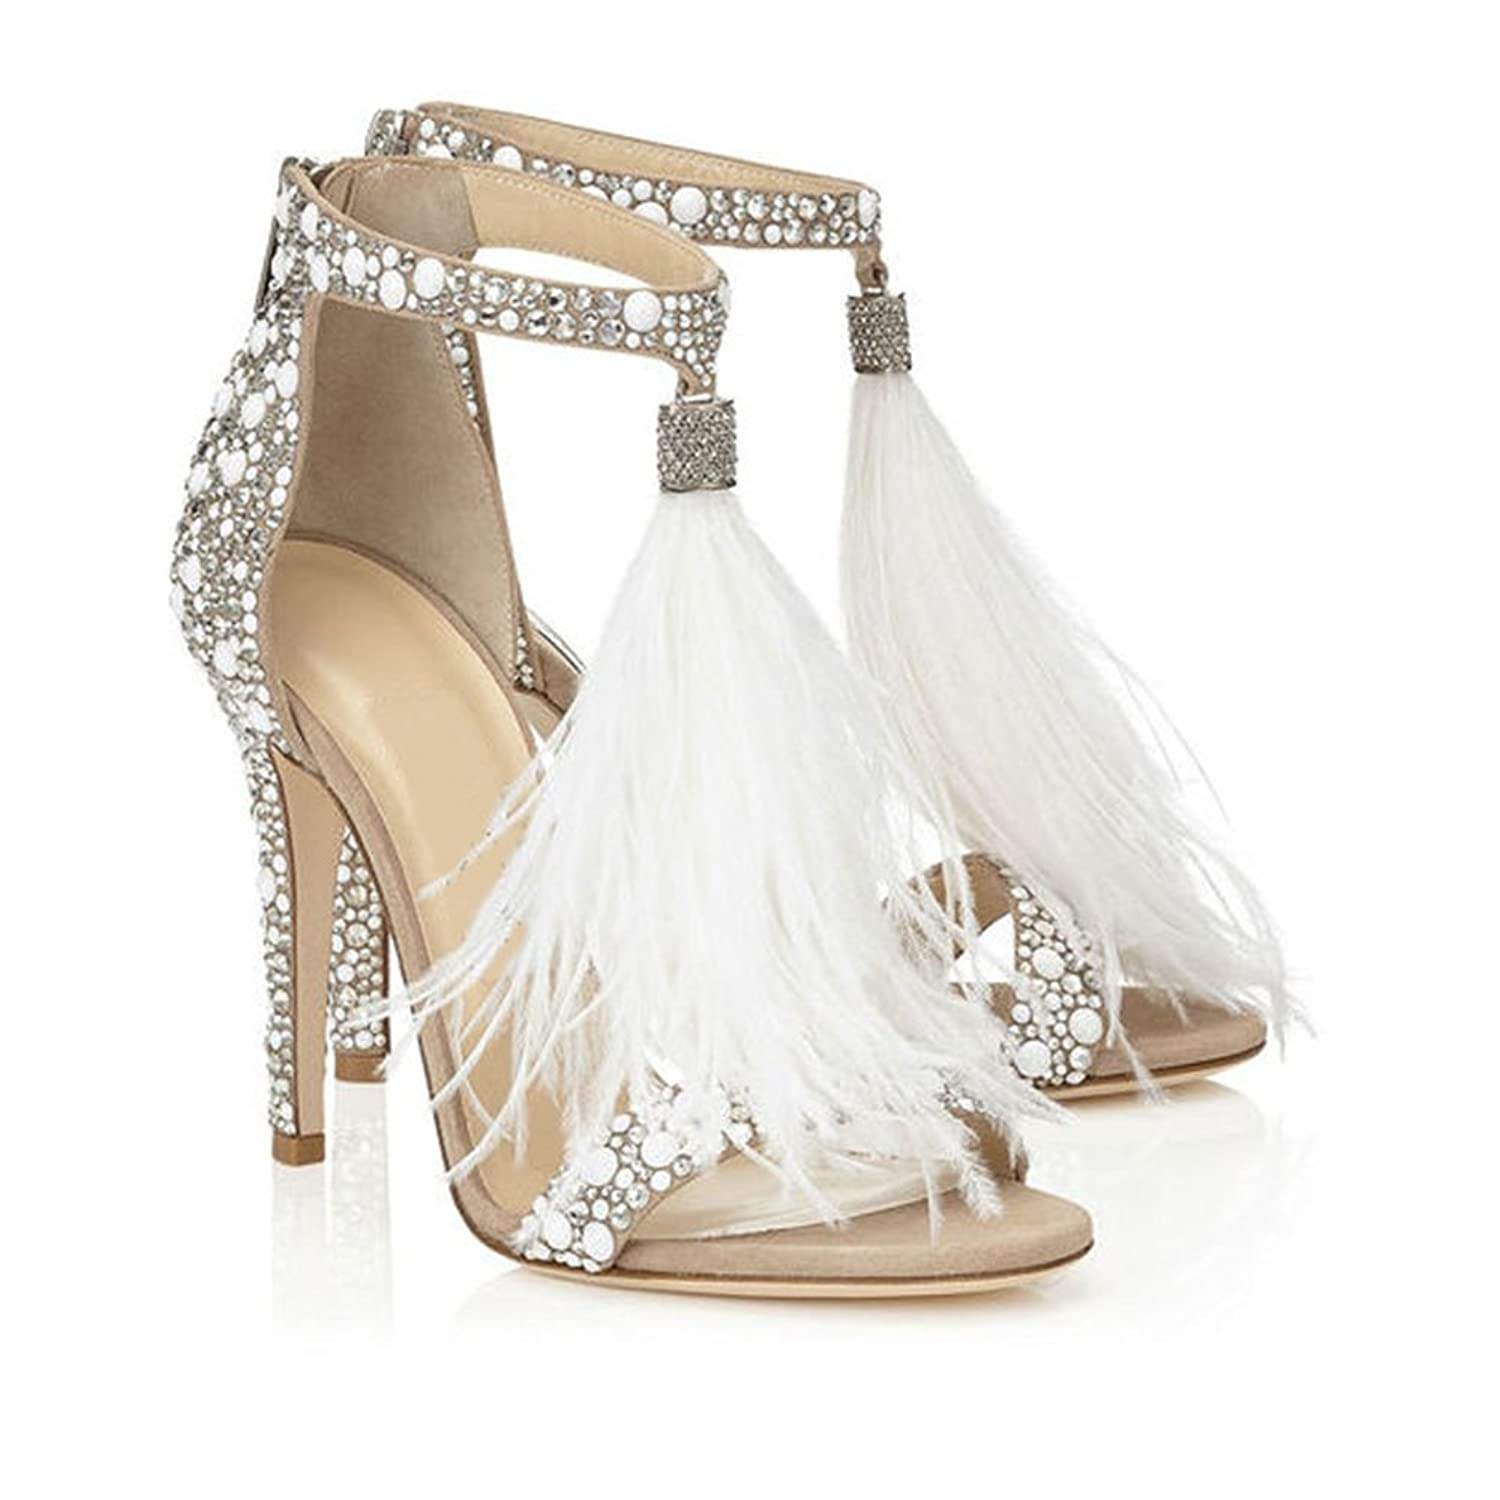 Azmodo Women's Wedding Dress Party & Evening Stiletto Heel Pearl Tassel White Color by Azmodo